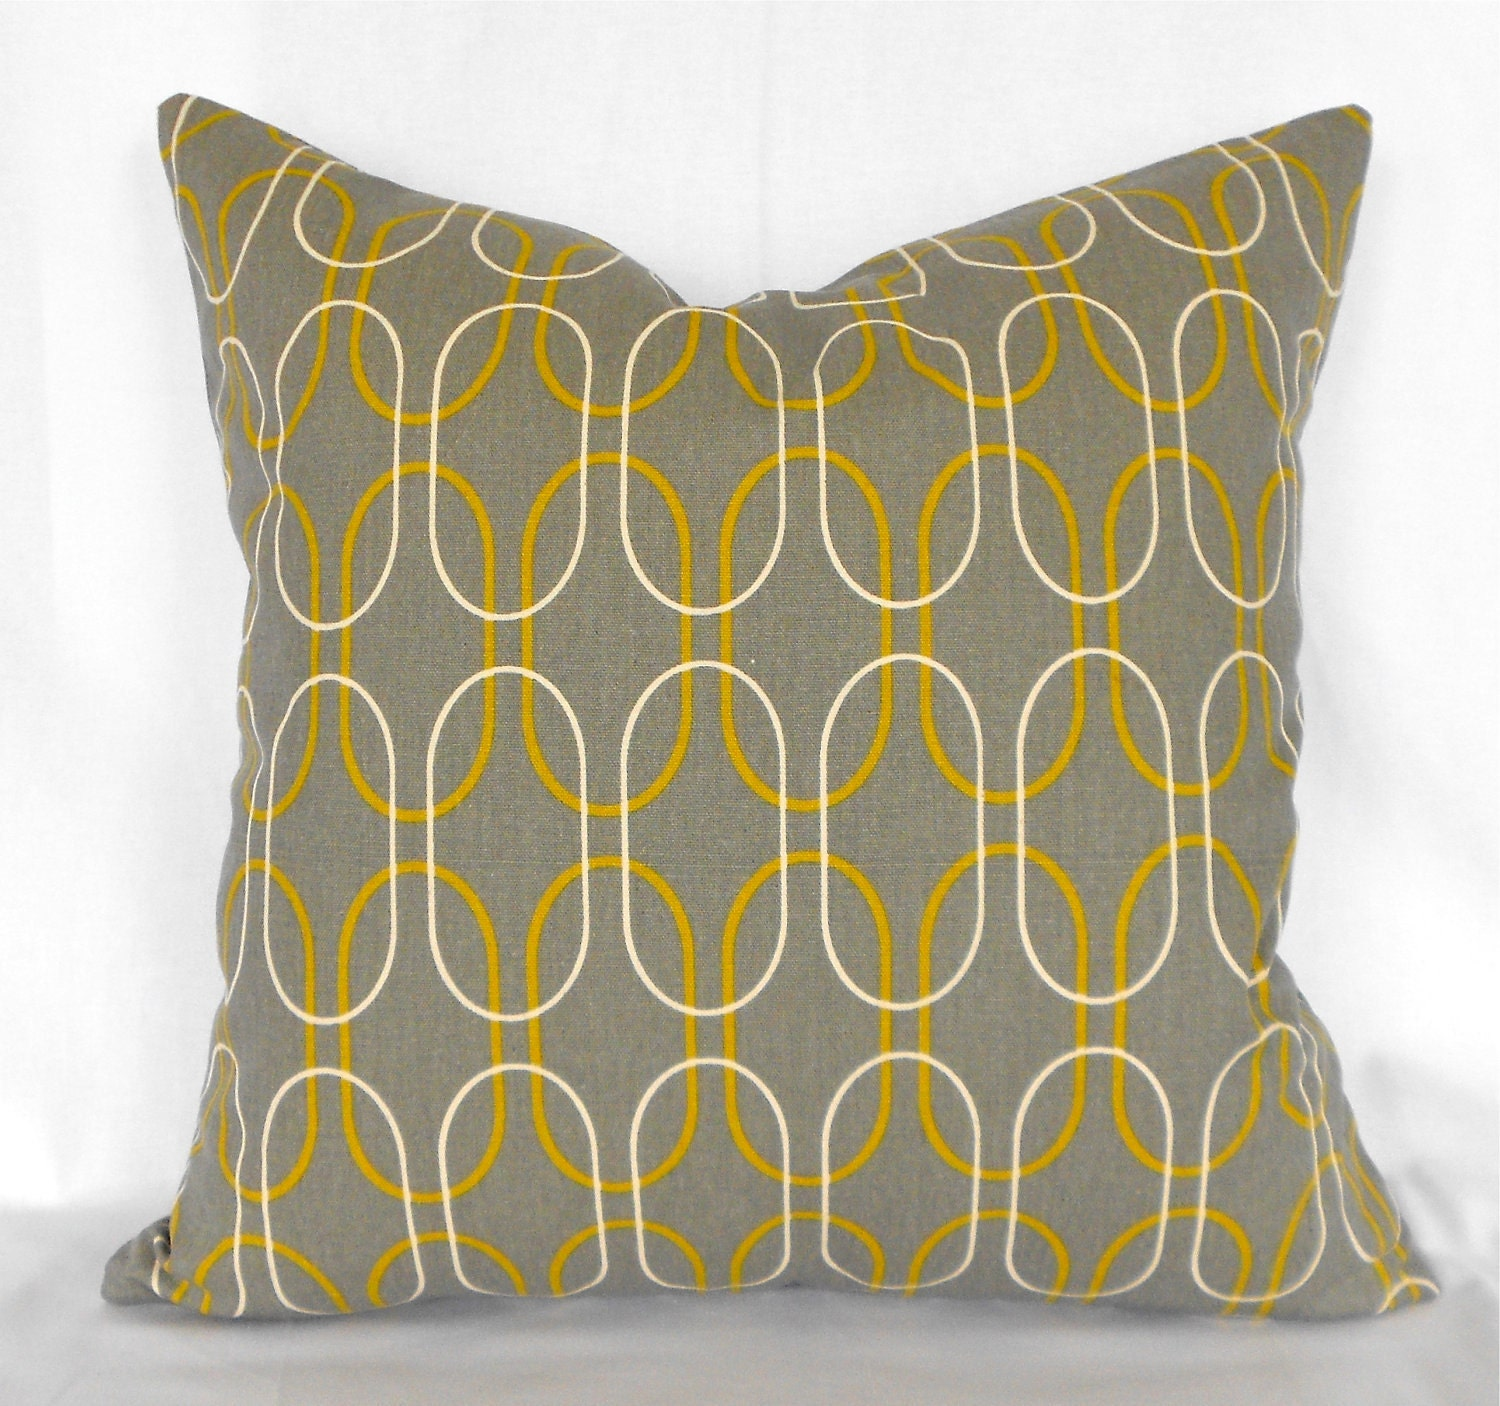 Pillow Covers Decorative Pillows Any Size Pillow Cover Home